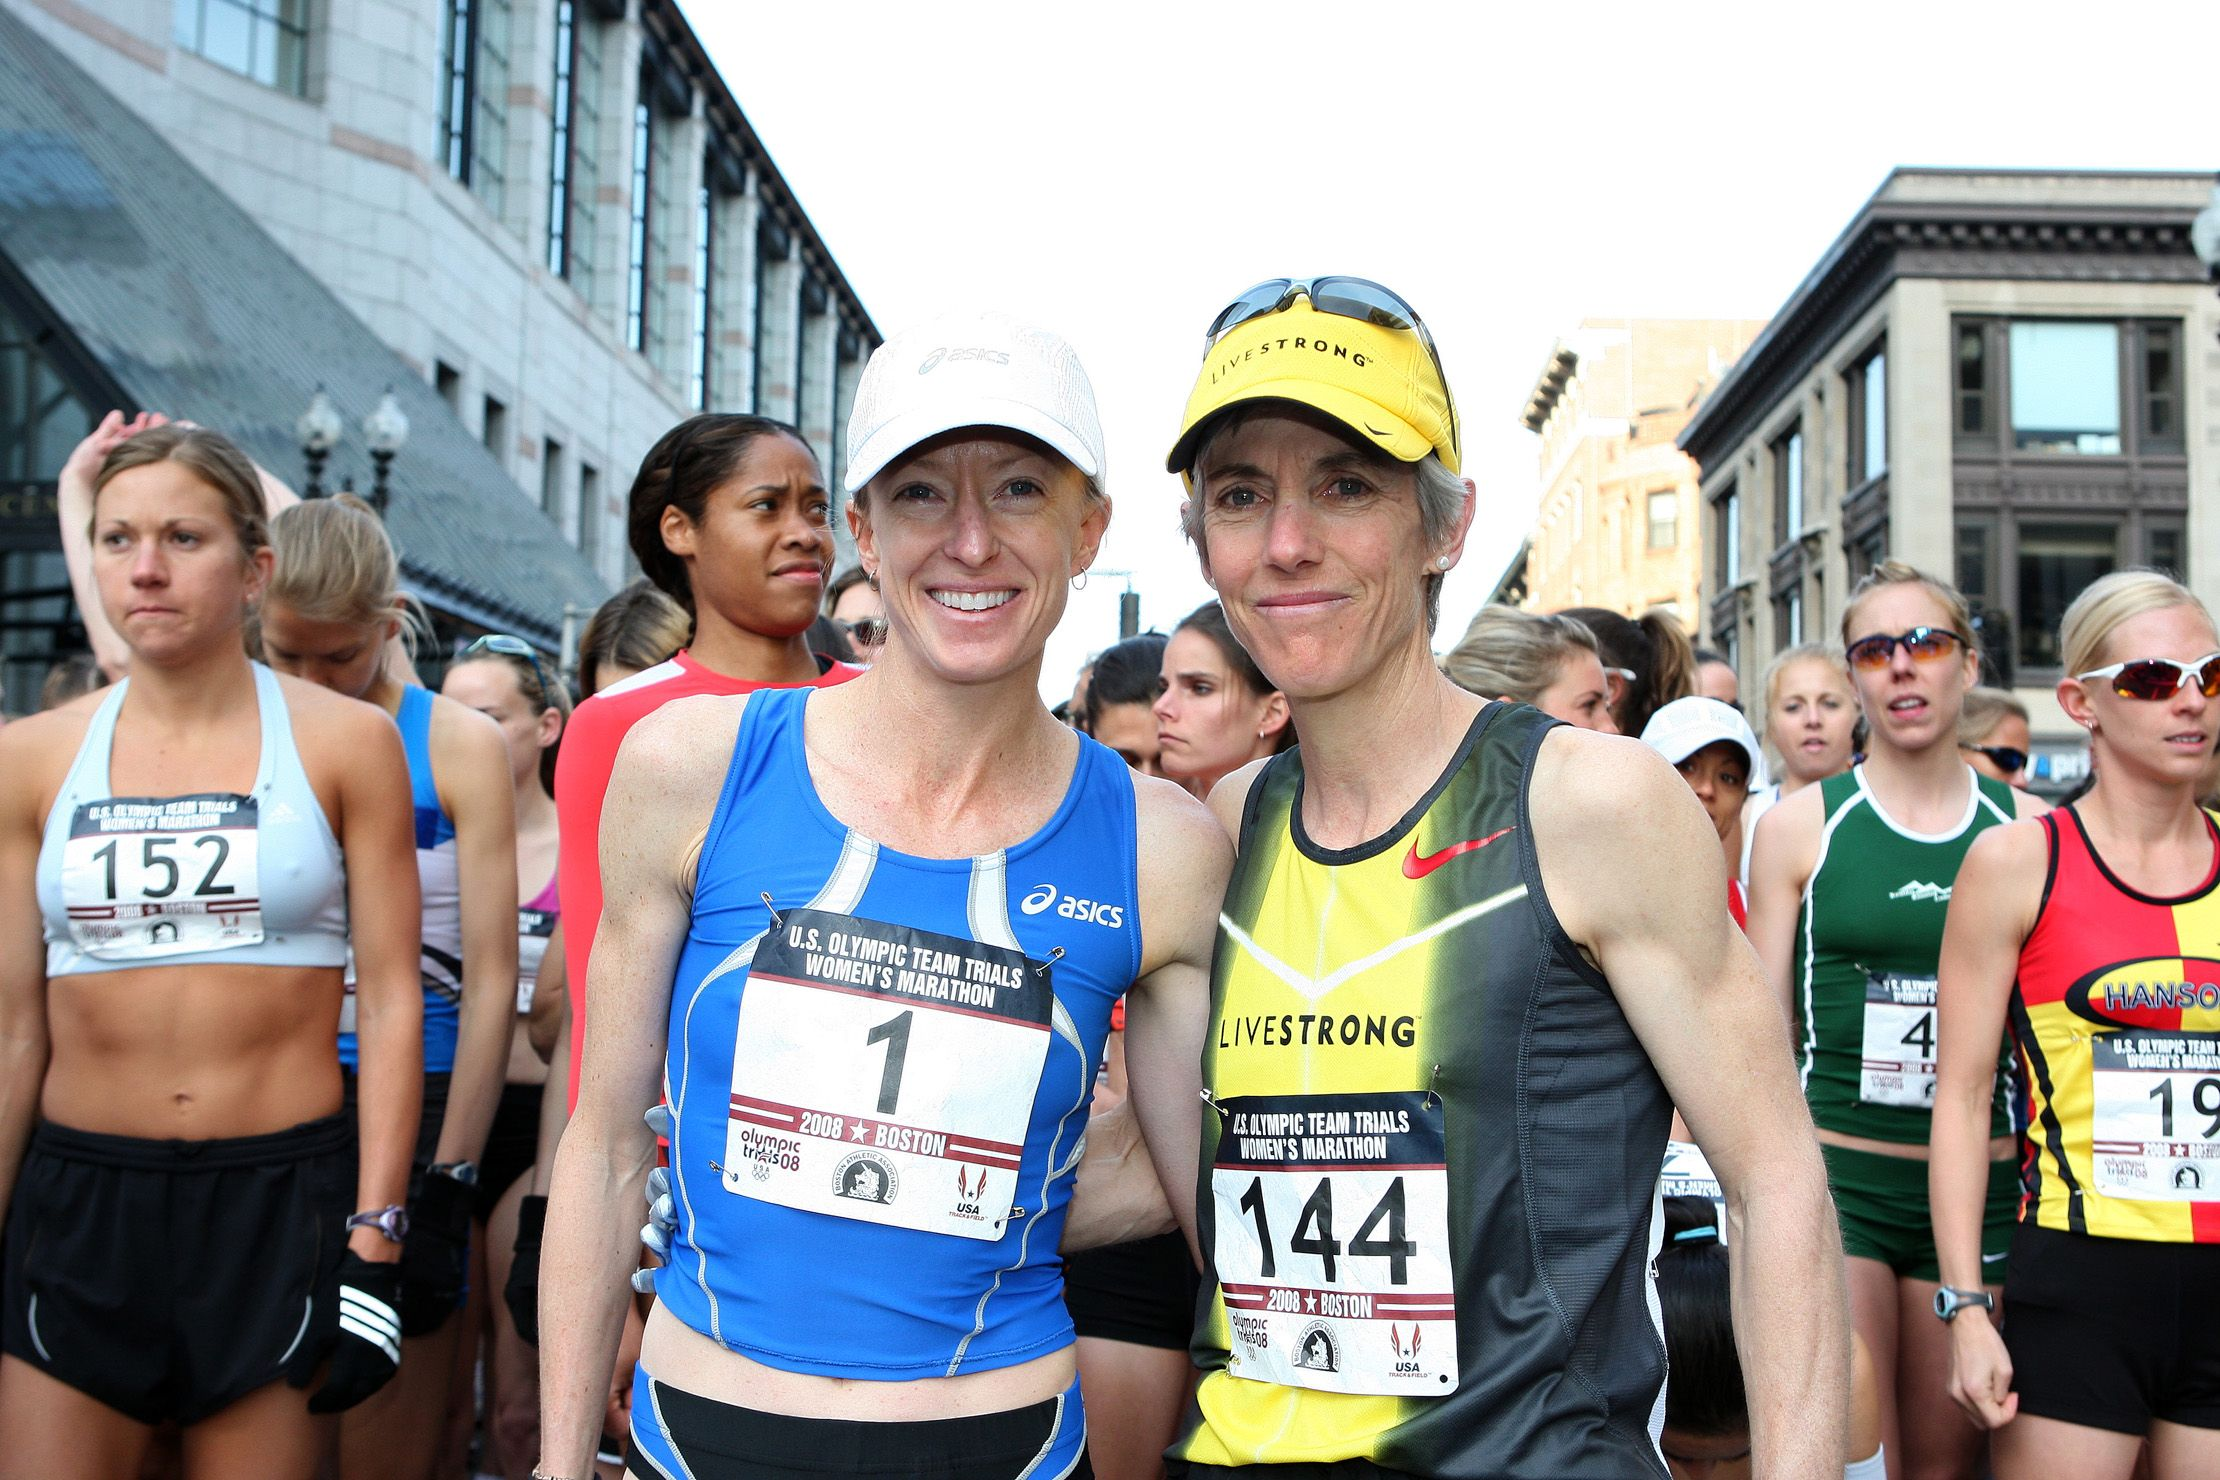 Forum on this topic: Barry Pepper, joan-benoit-samuelson-olympic-medal-in-marathon/